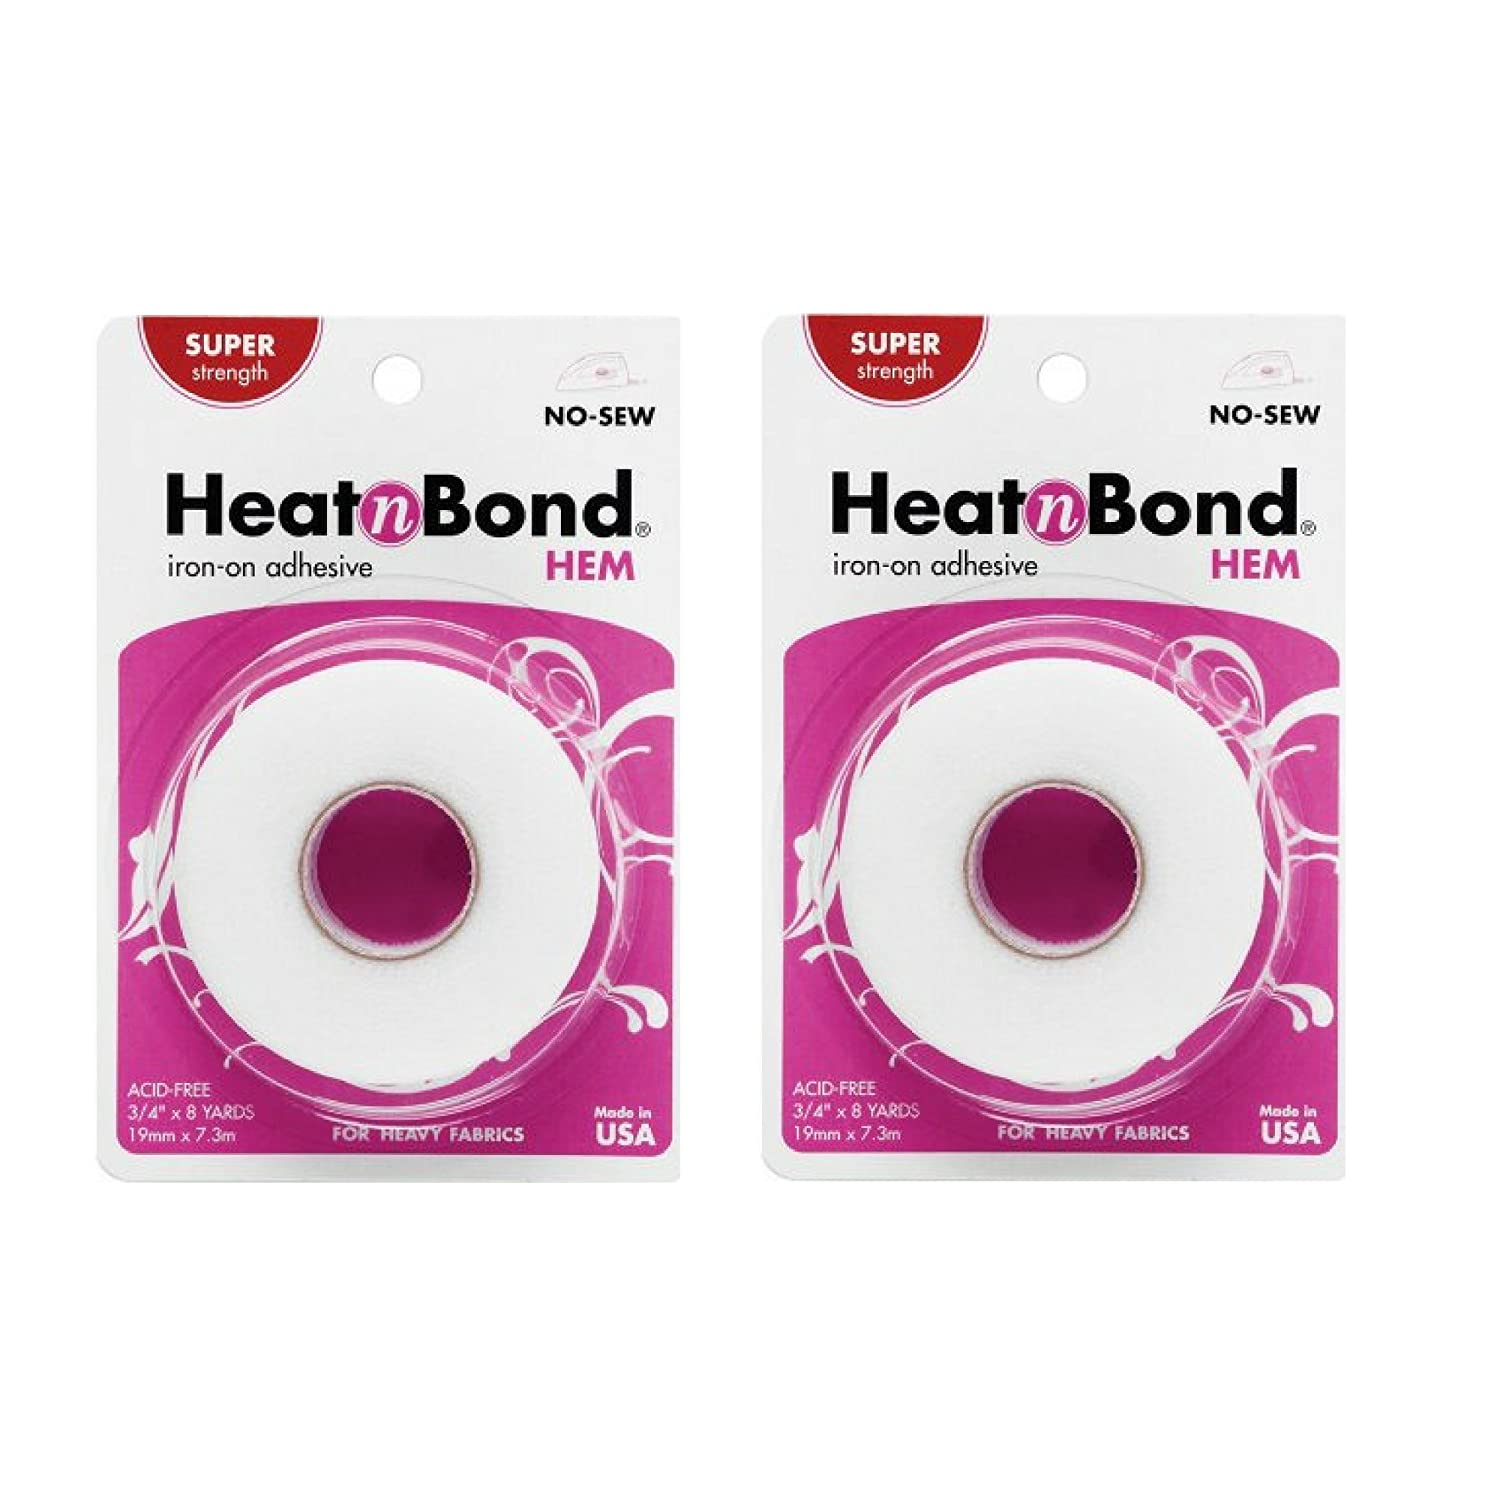 3//4 Inch x 8 Yards 2 Pack bond HeatnBond Hem Iron-On Adhesive Super Weight